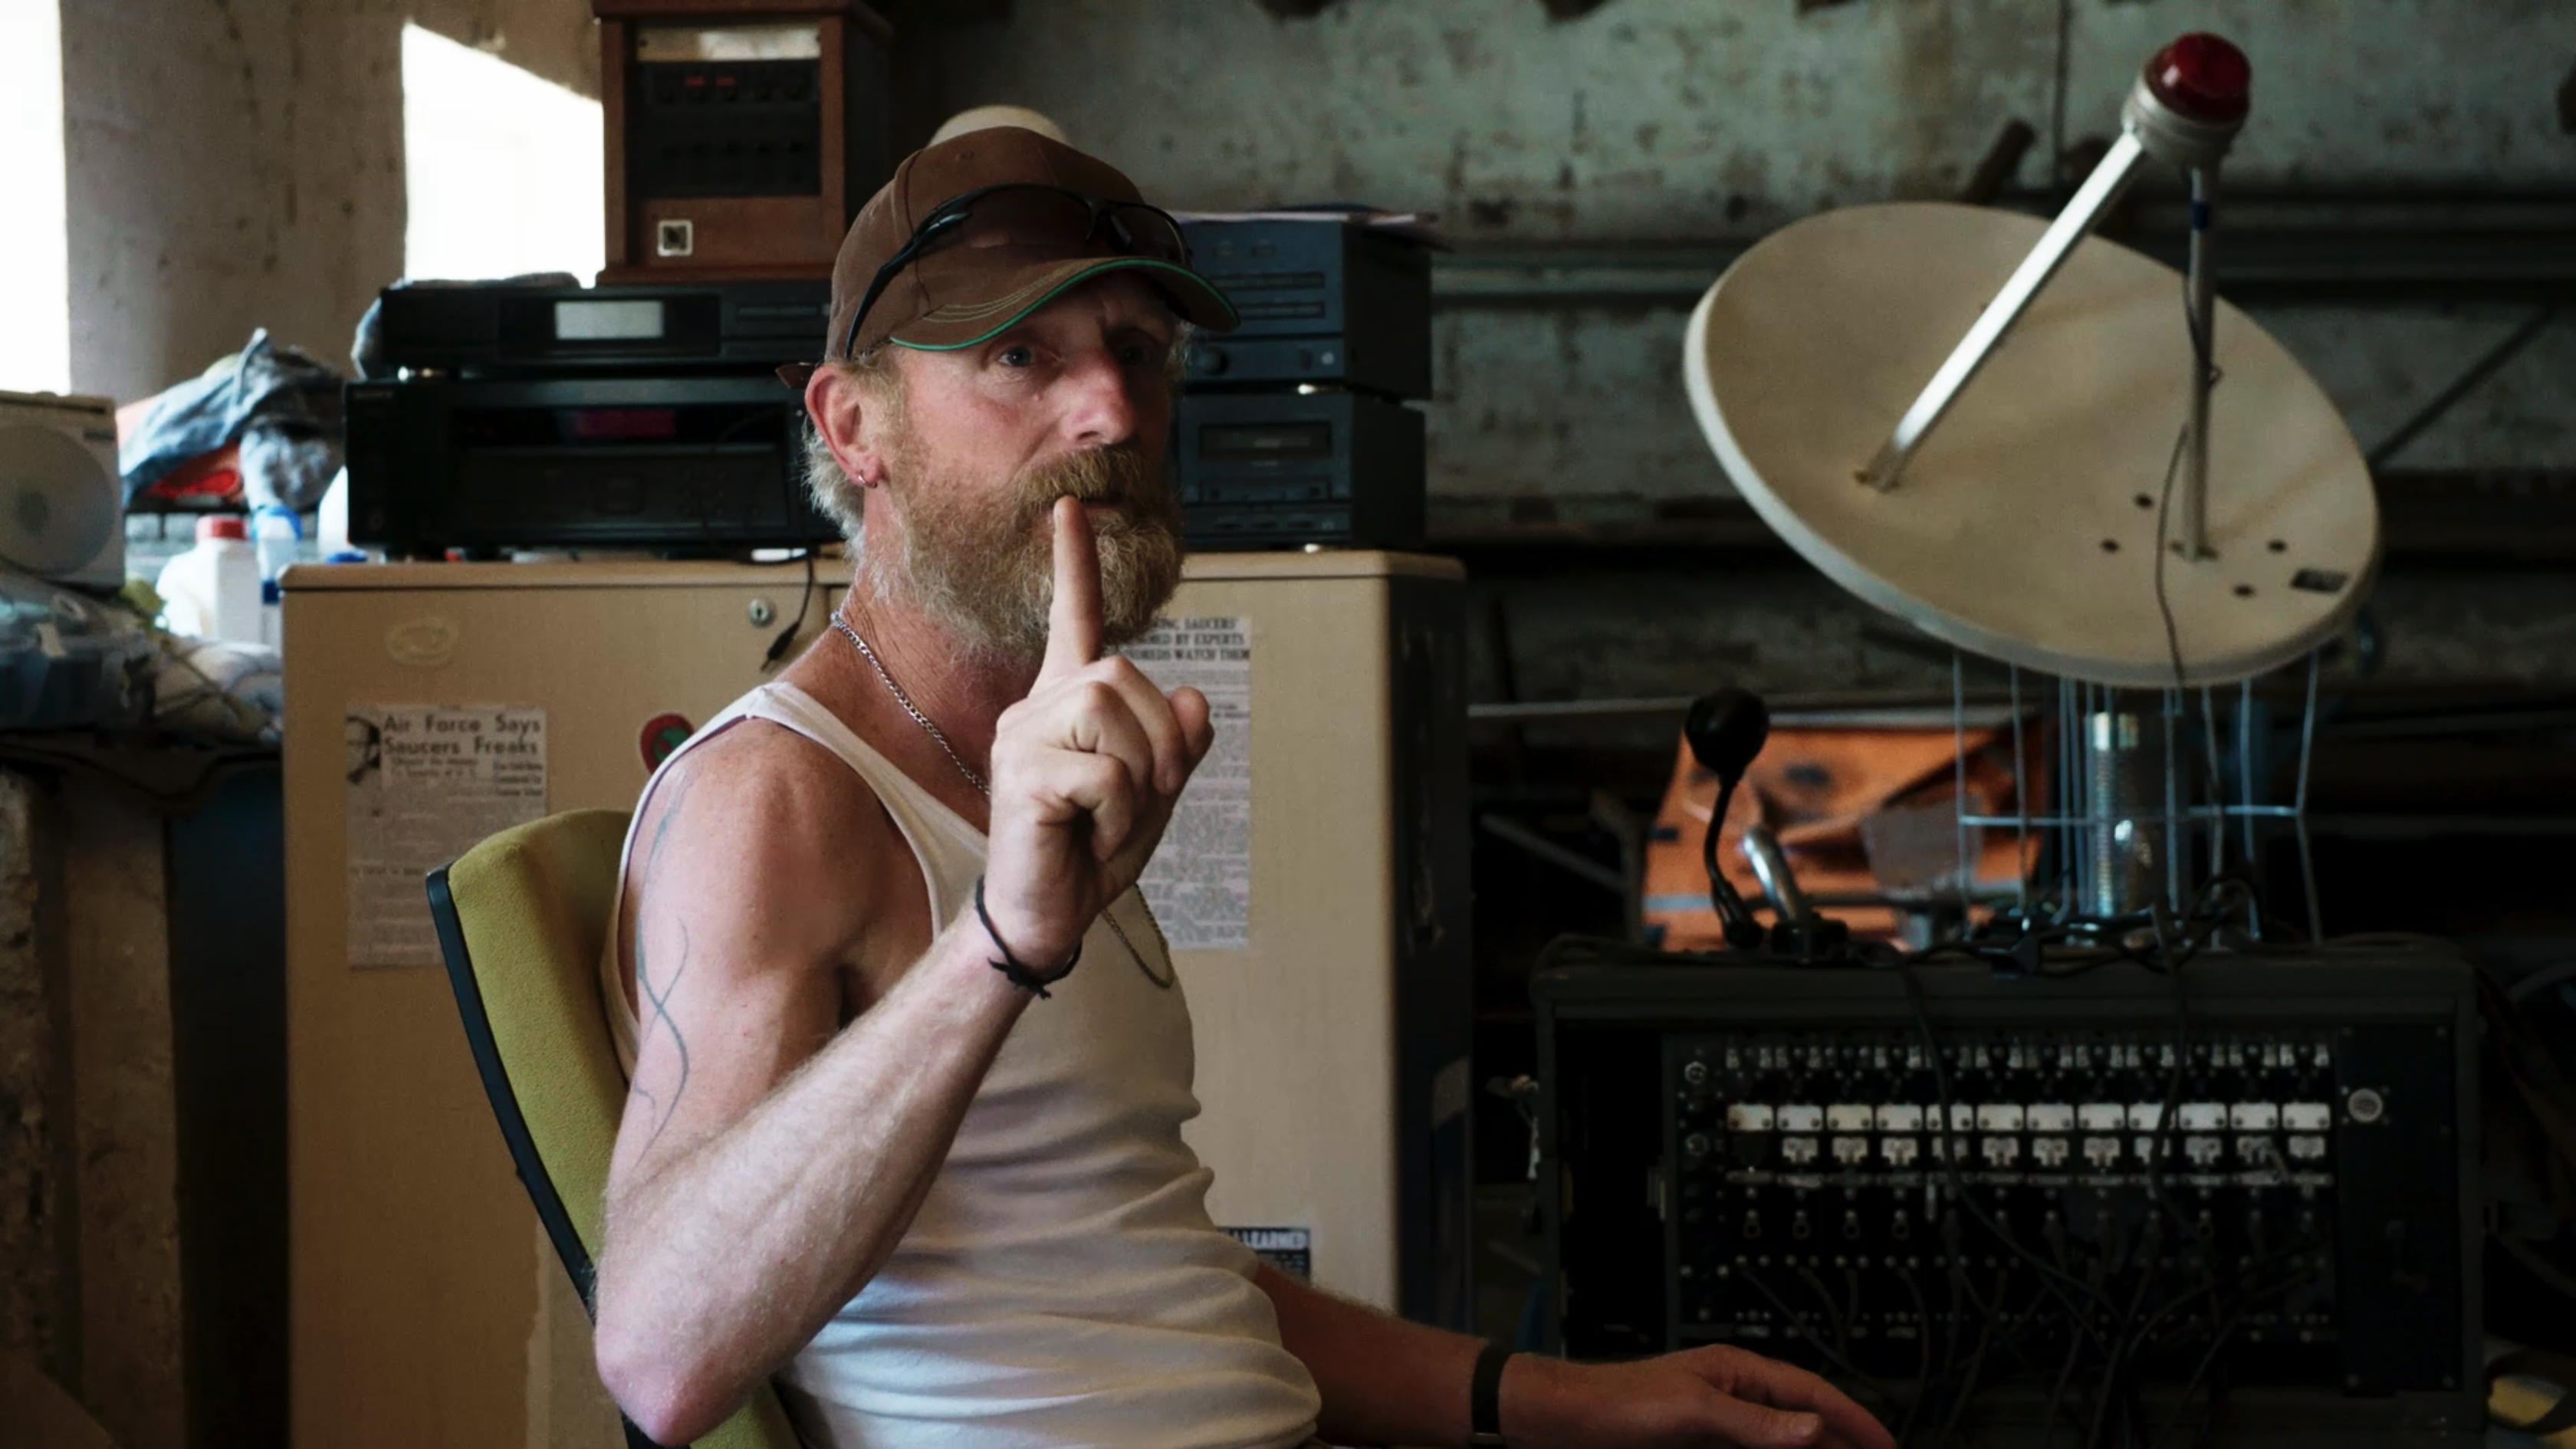 Still from 'Wat we niet wisten over koeien'. Ben is sitting in front of a weird contraption with a satellite on it. He's holding his index finger up, as if to signify 'listen!'.